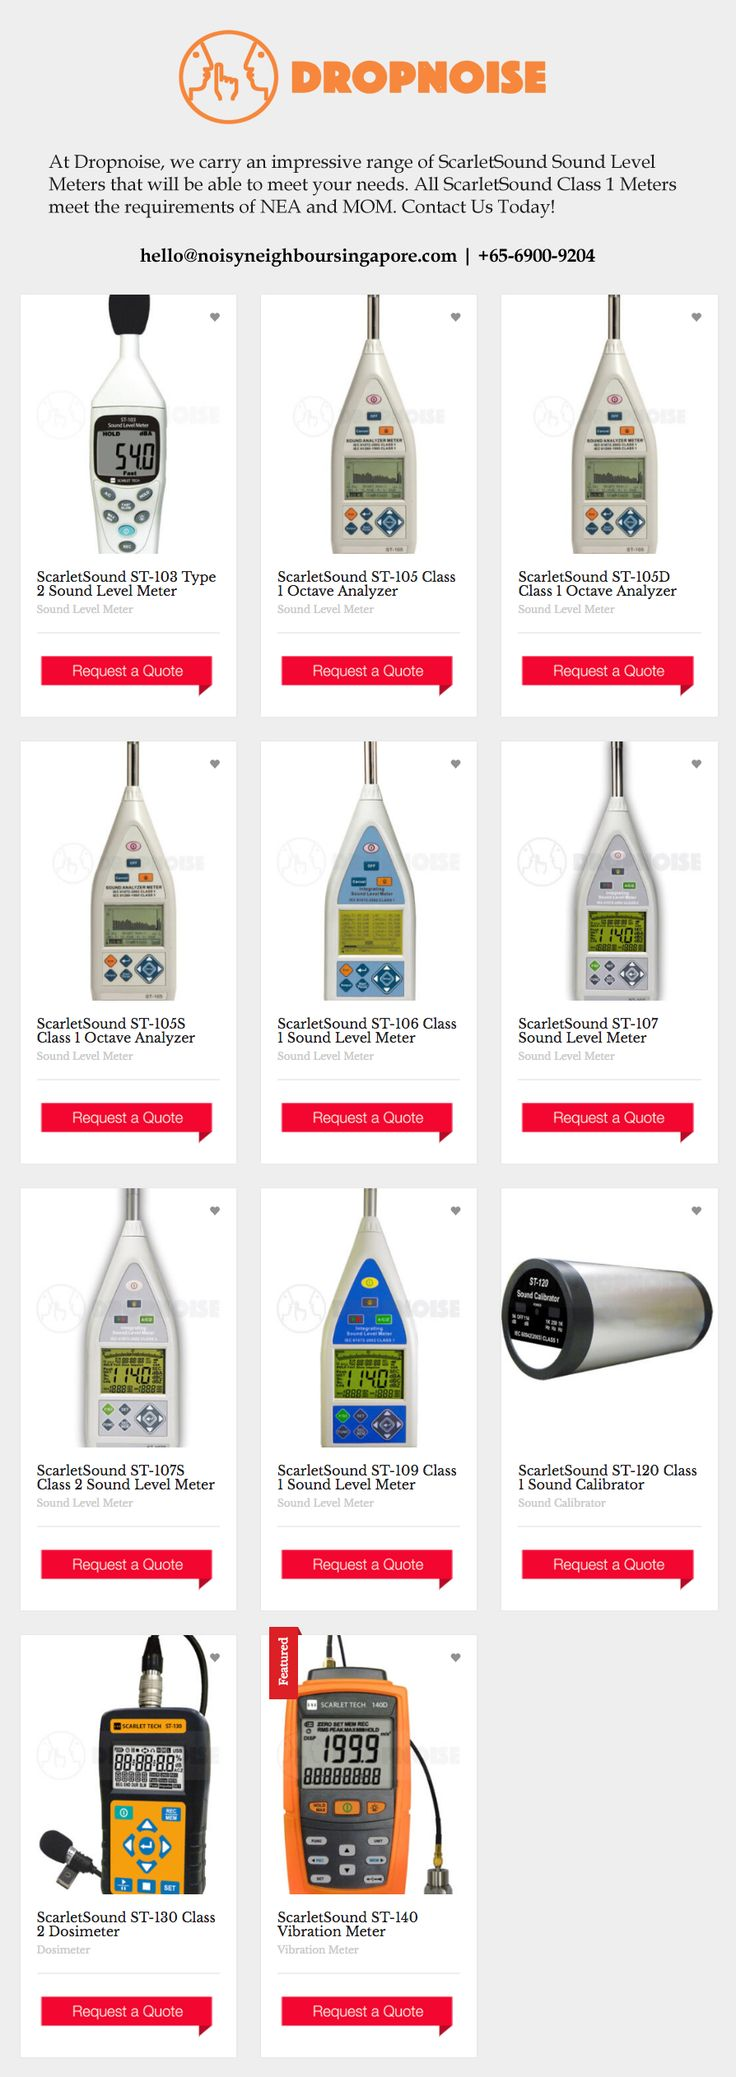 Scarlet Sound Sound Level Meters at Dropnoise Singapore